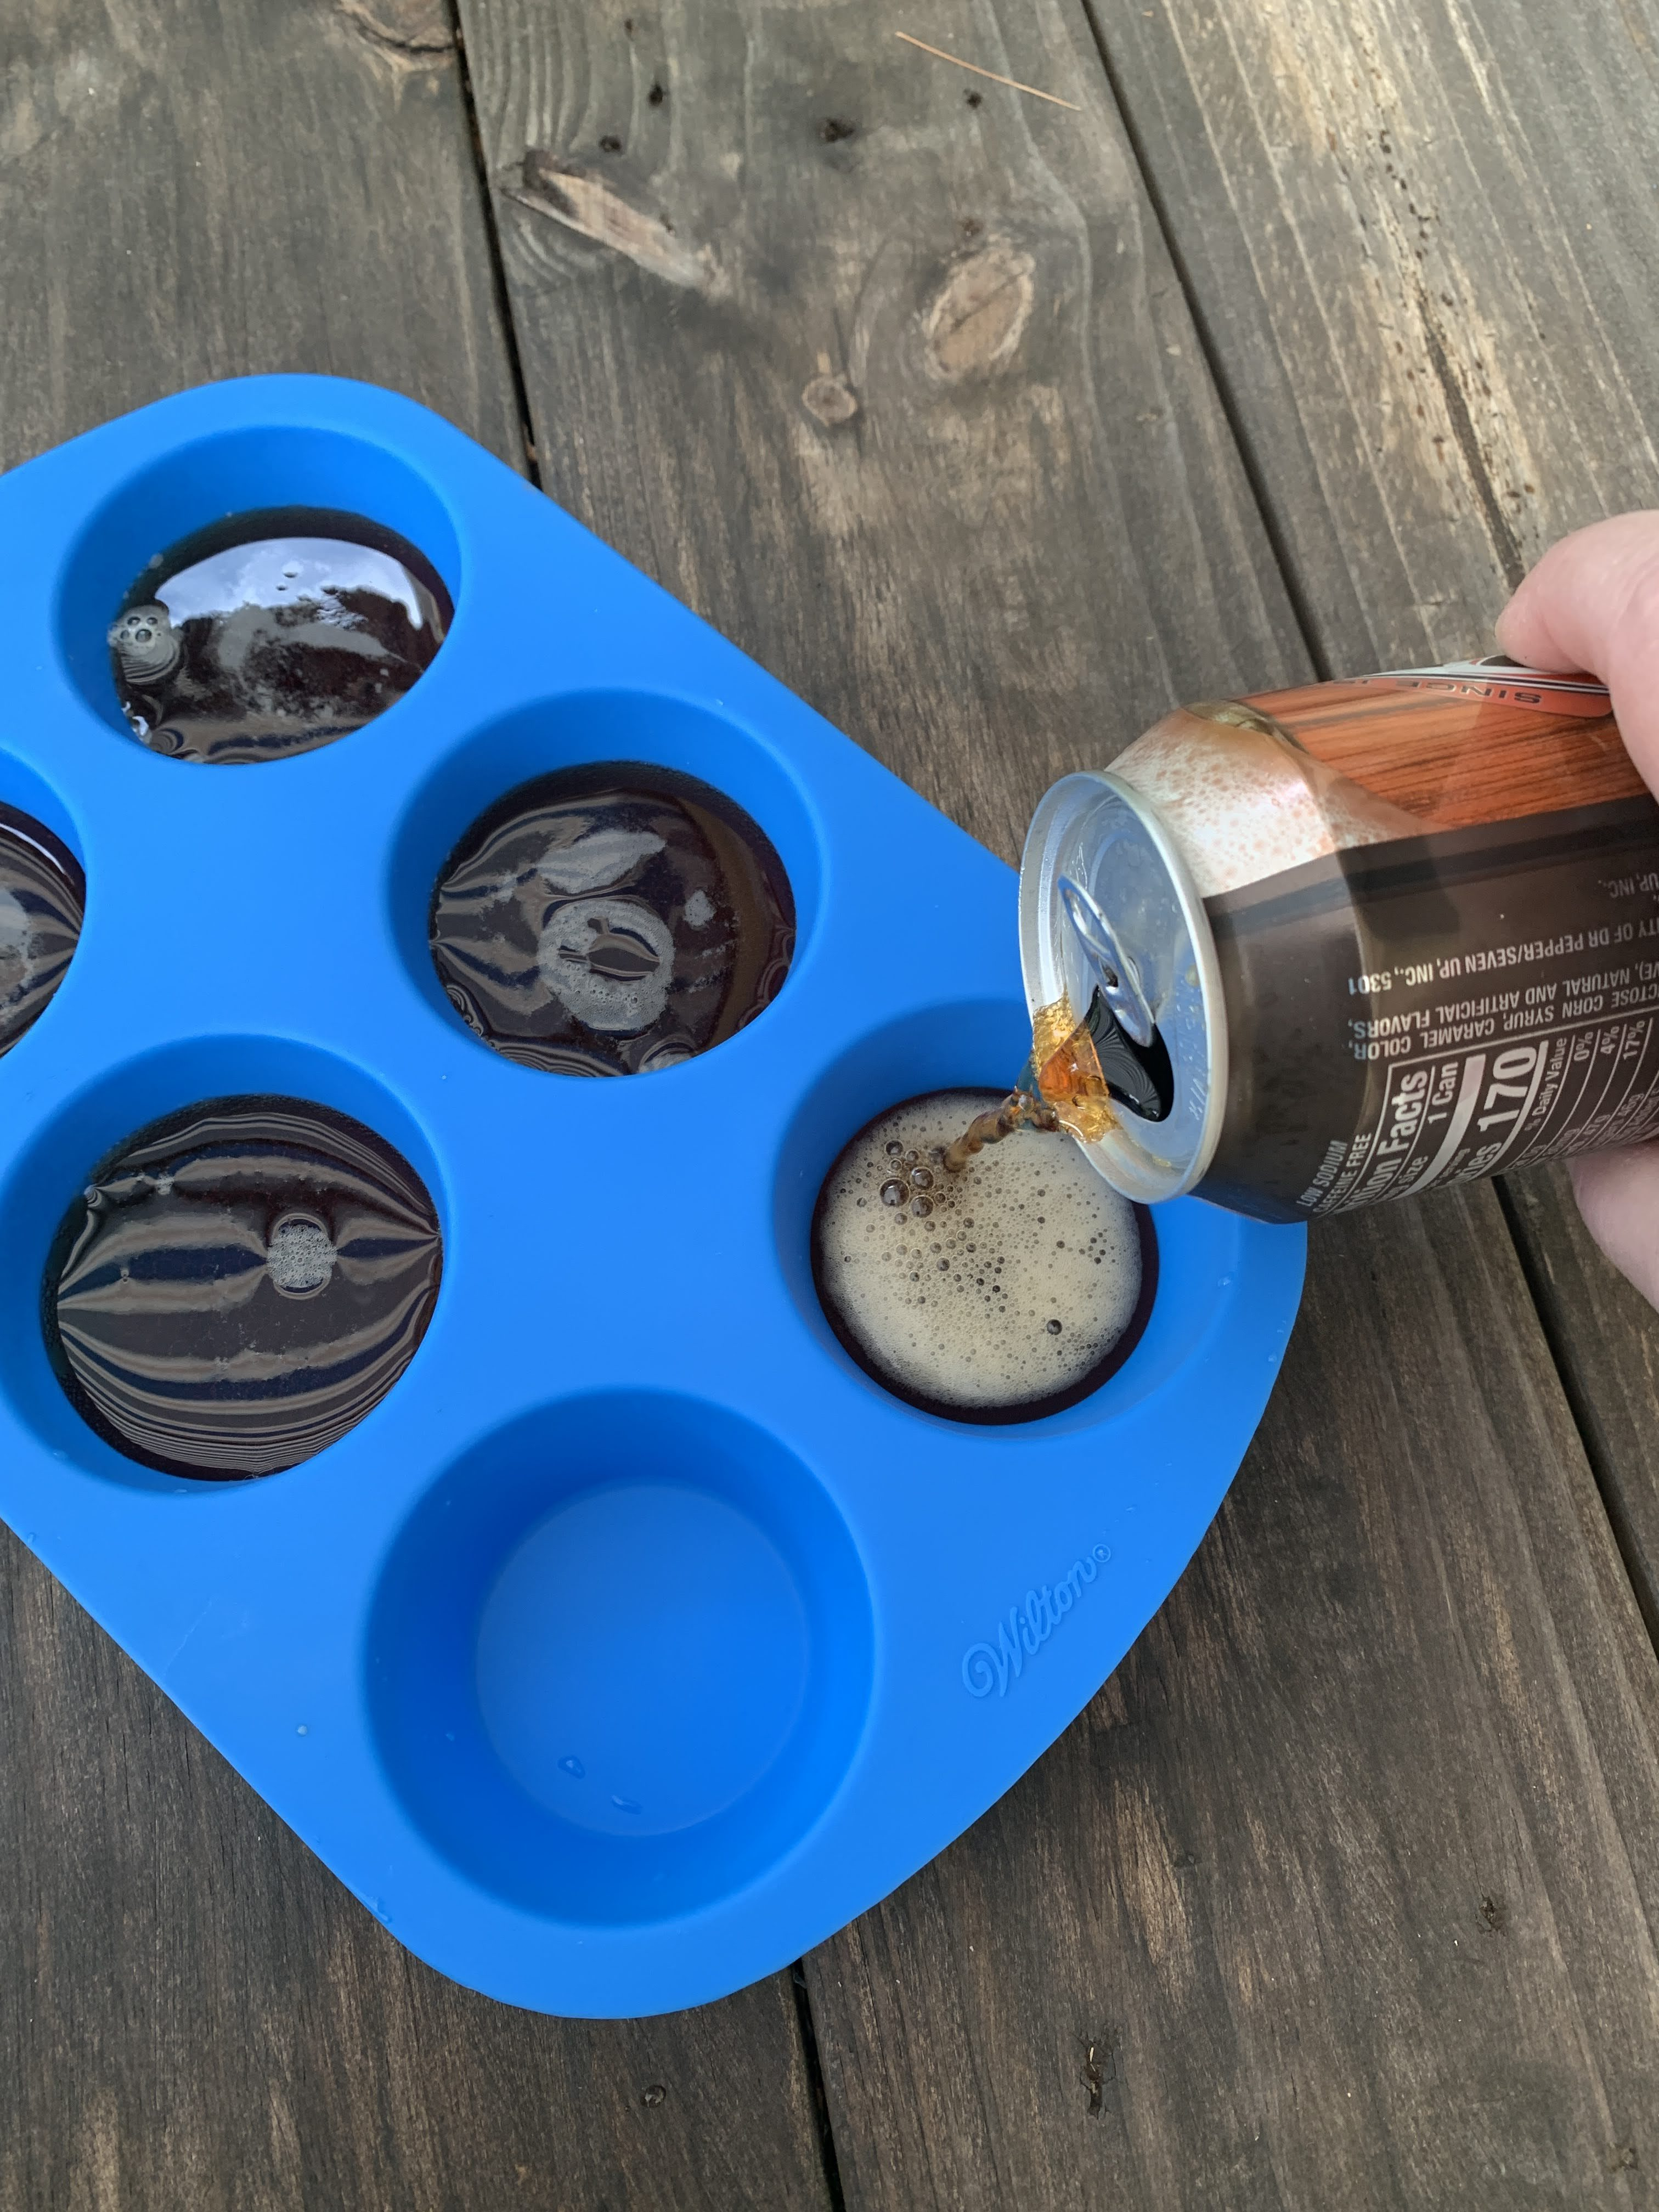 blue silicone cupcake mold with a hand pouring root beer into it